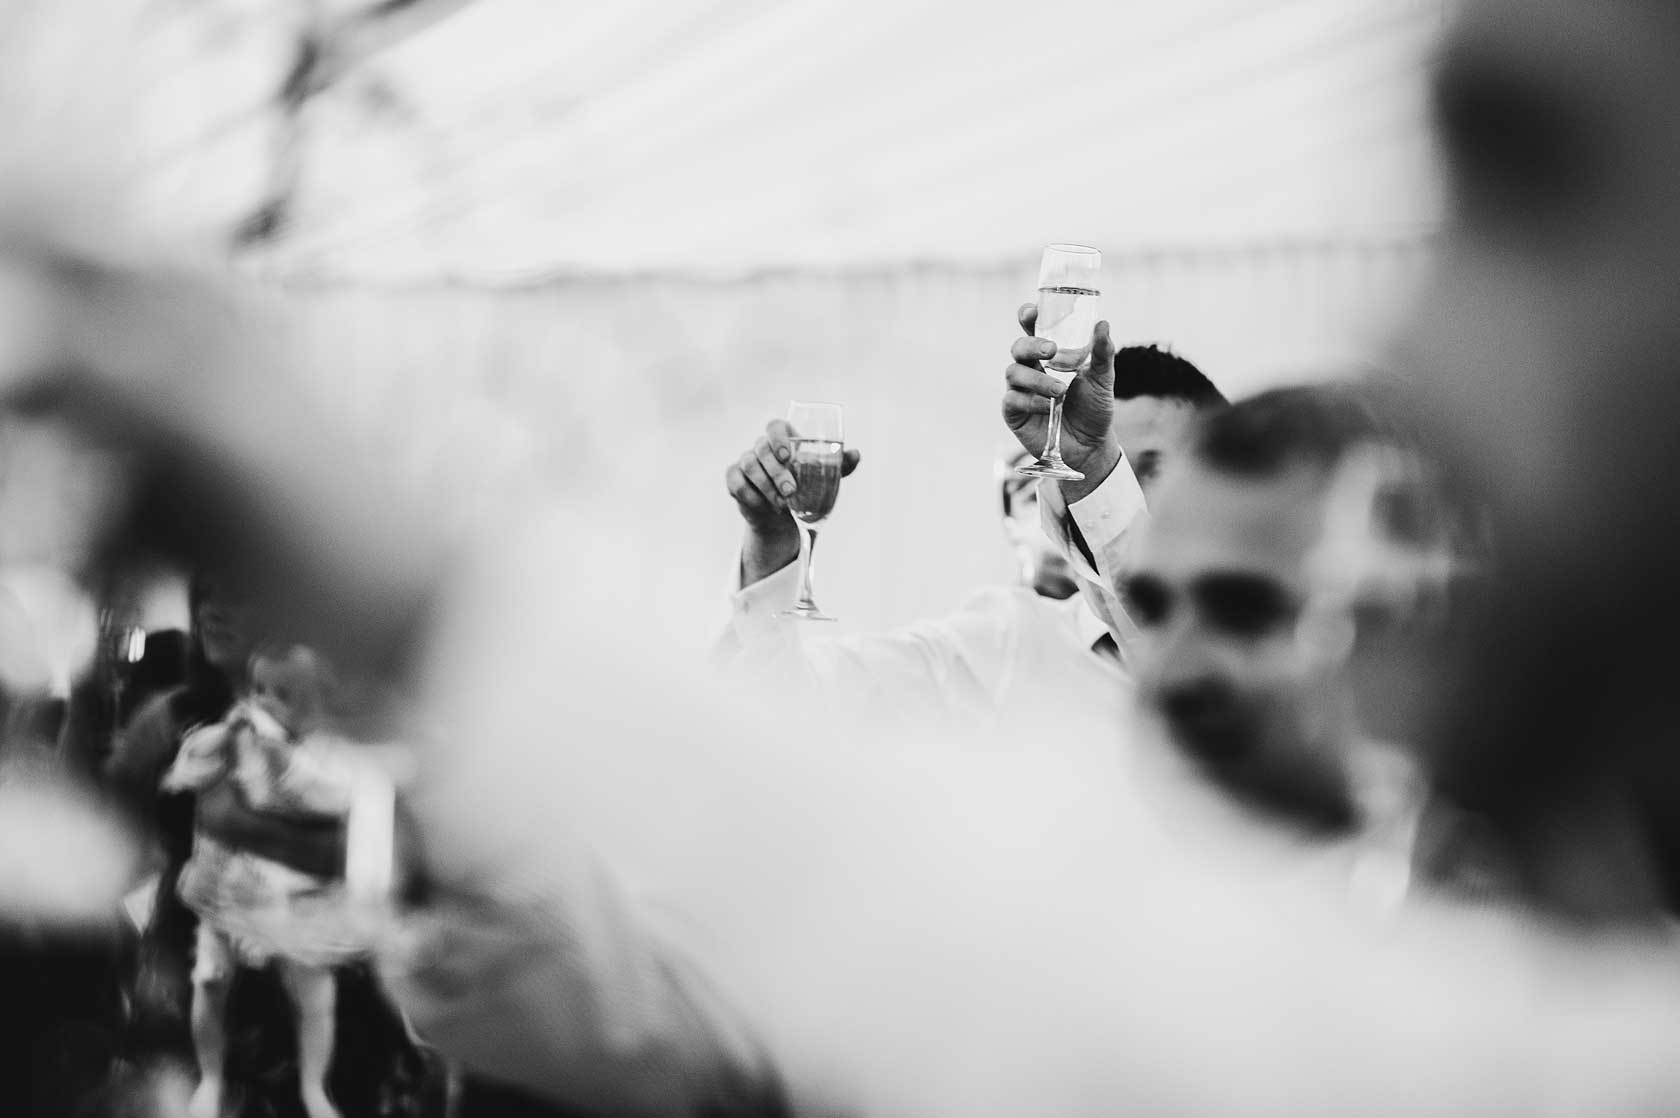 Reportage Wedding Photography at Keythorpe Manor